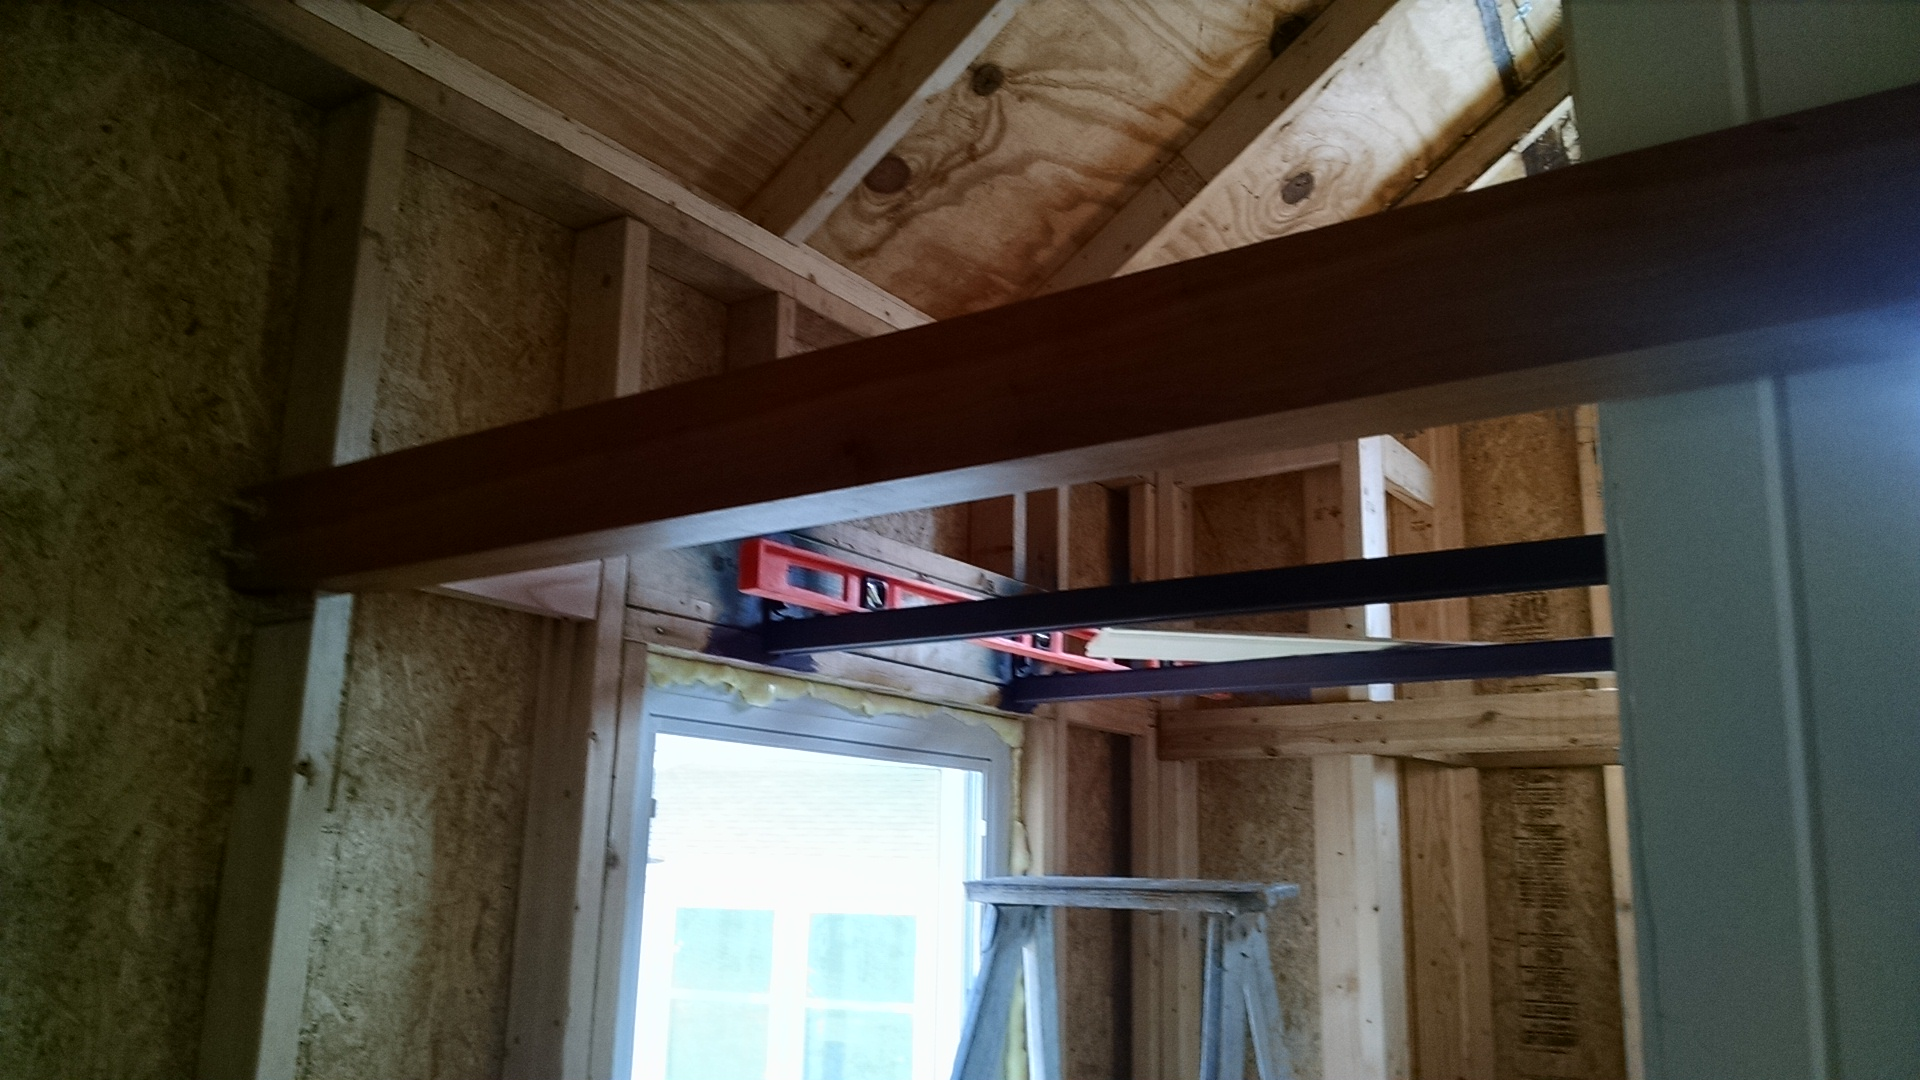 this window is above the kitchen countertop, the steel joists are seen attached above the window, and at the front of the loft is a cherry beam